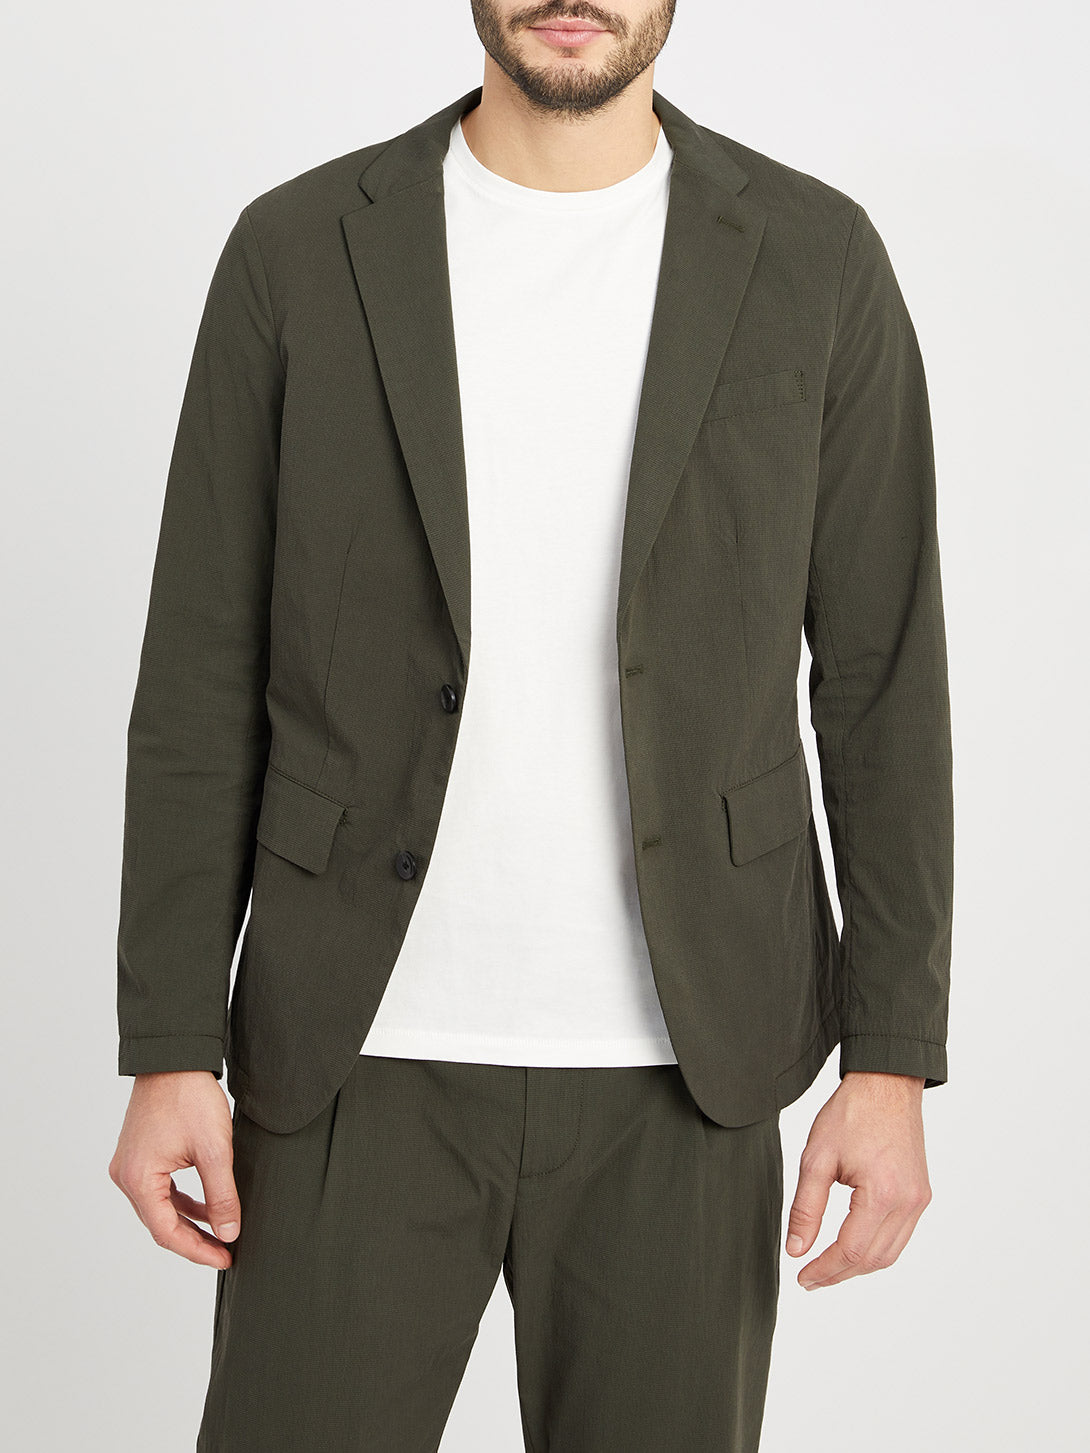 DARK OLIVE blazers for men conduit packable blazer ons clothing